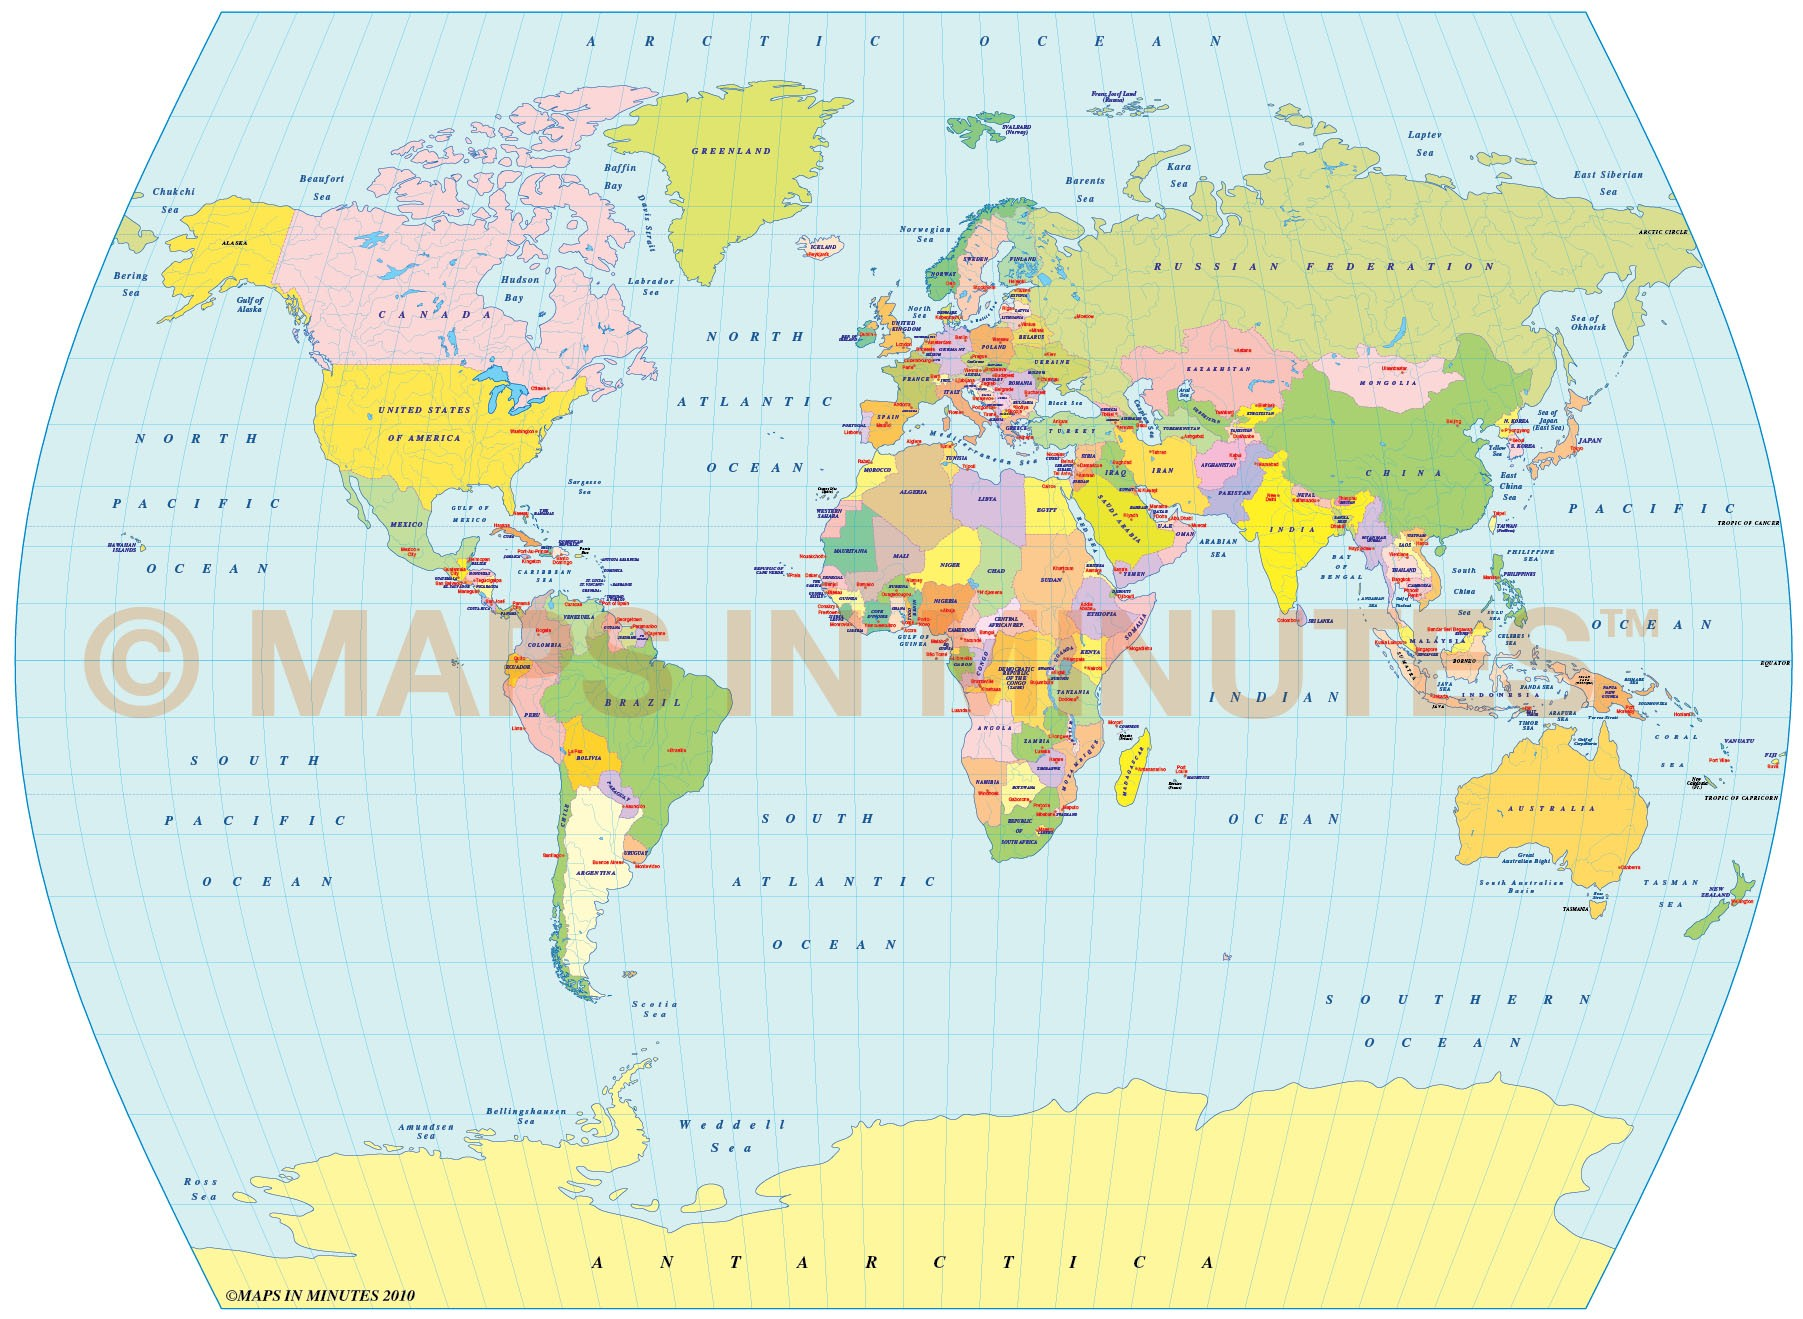 Digital vector royalty free world political map in the the times digital vector world map times projection 100m scale uk centric political gumiabroncs Images